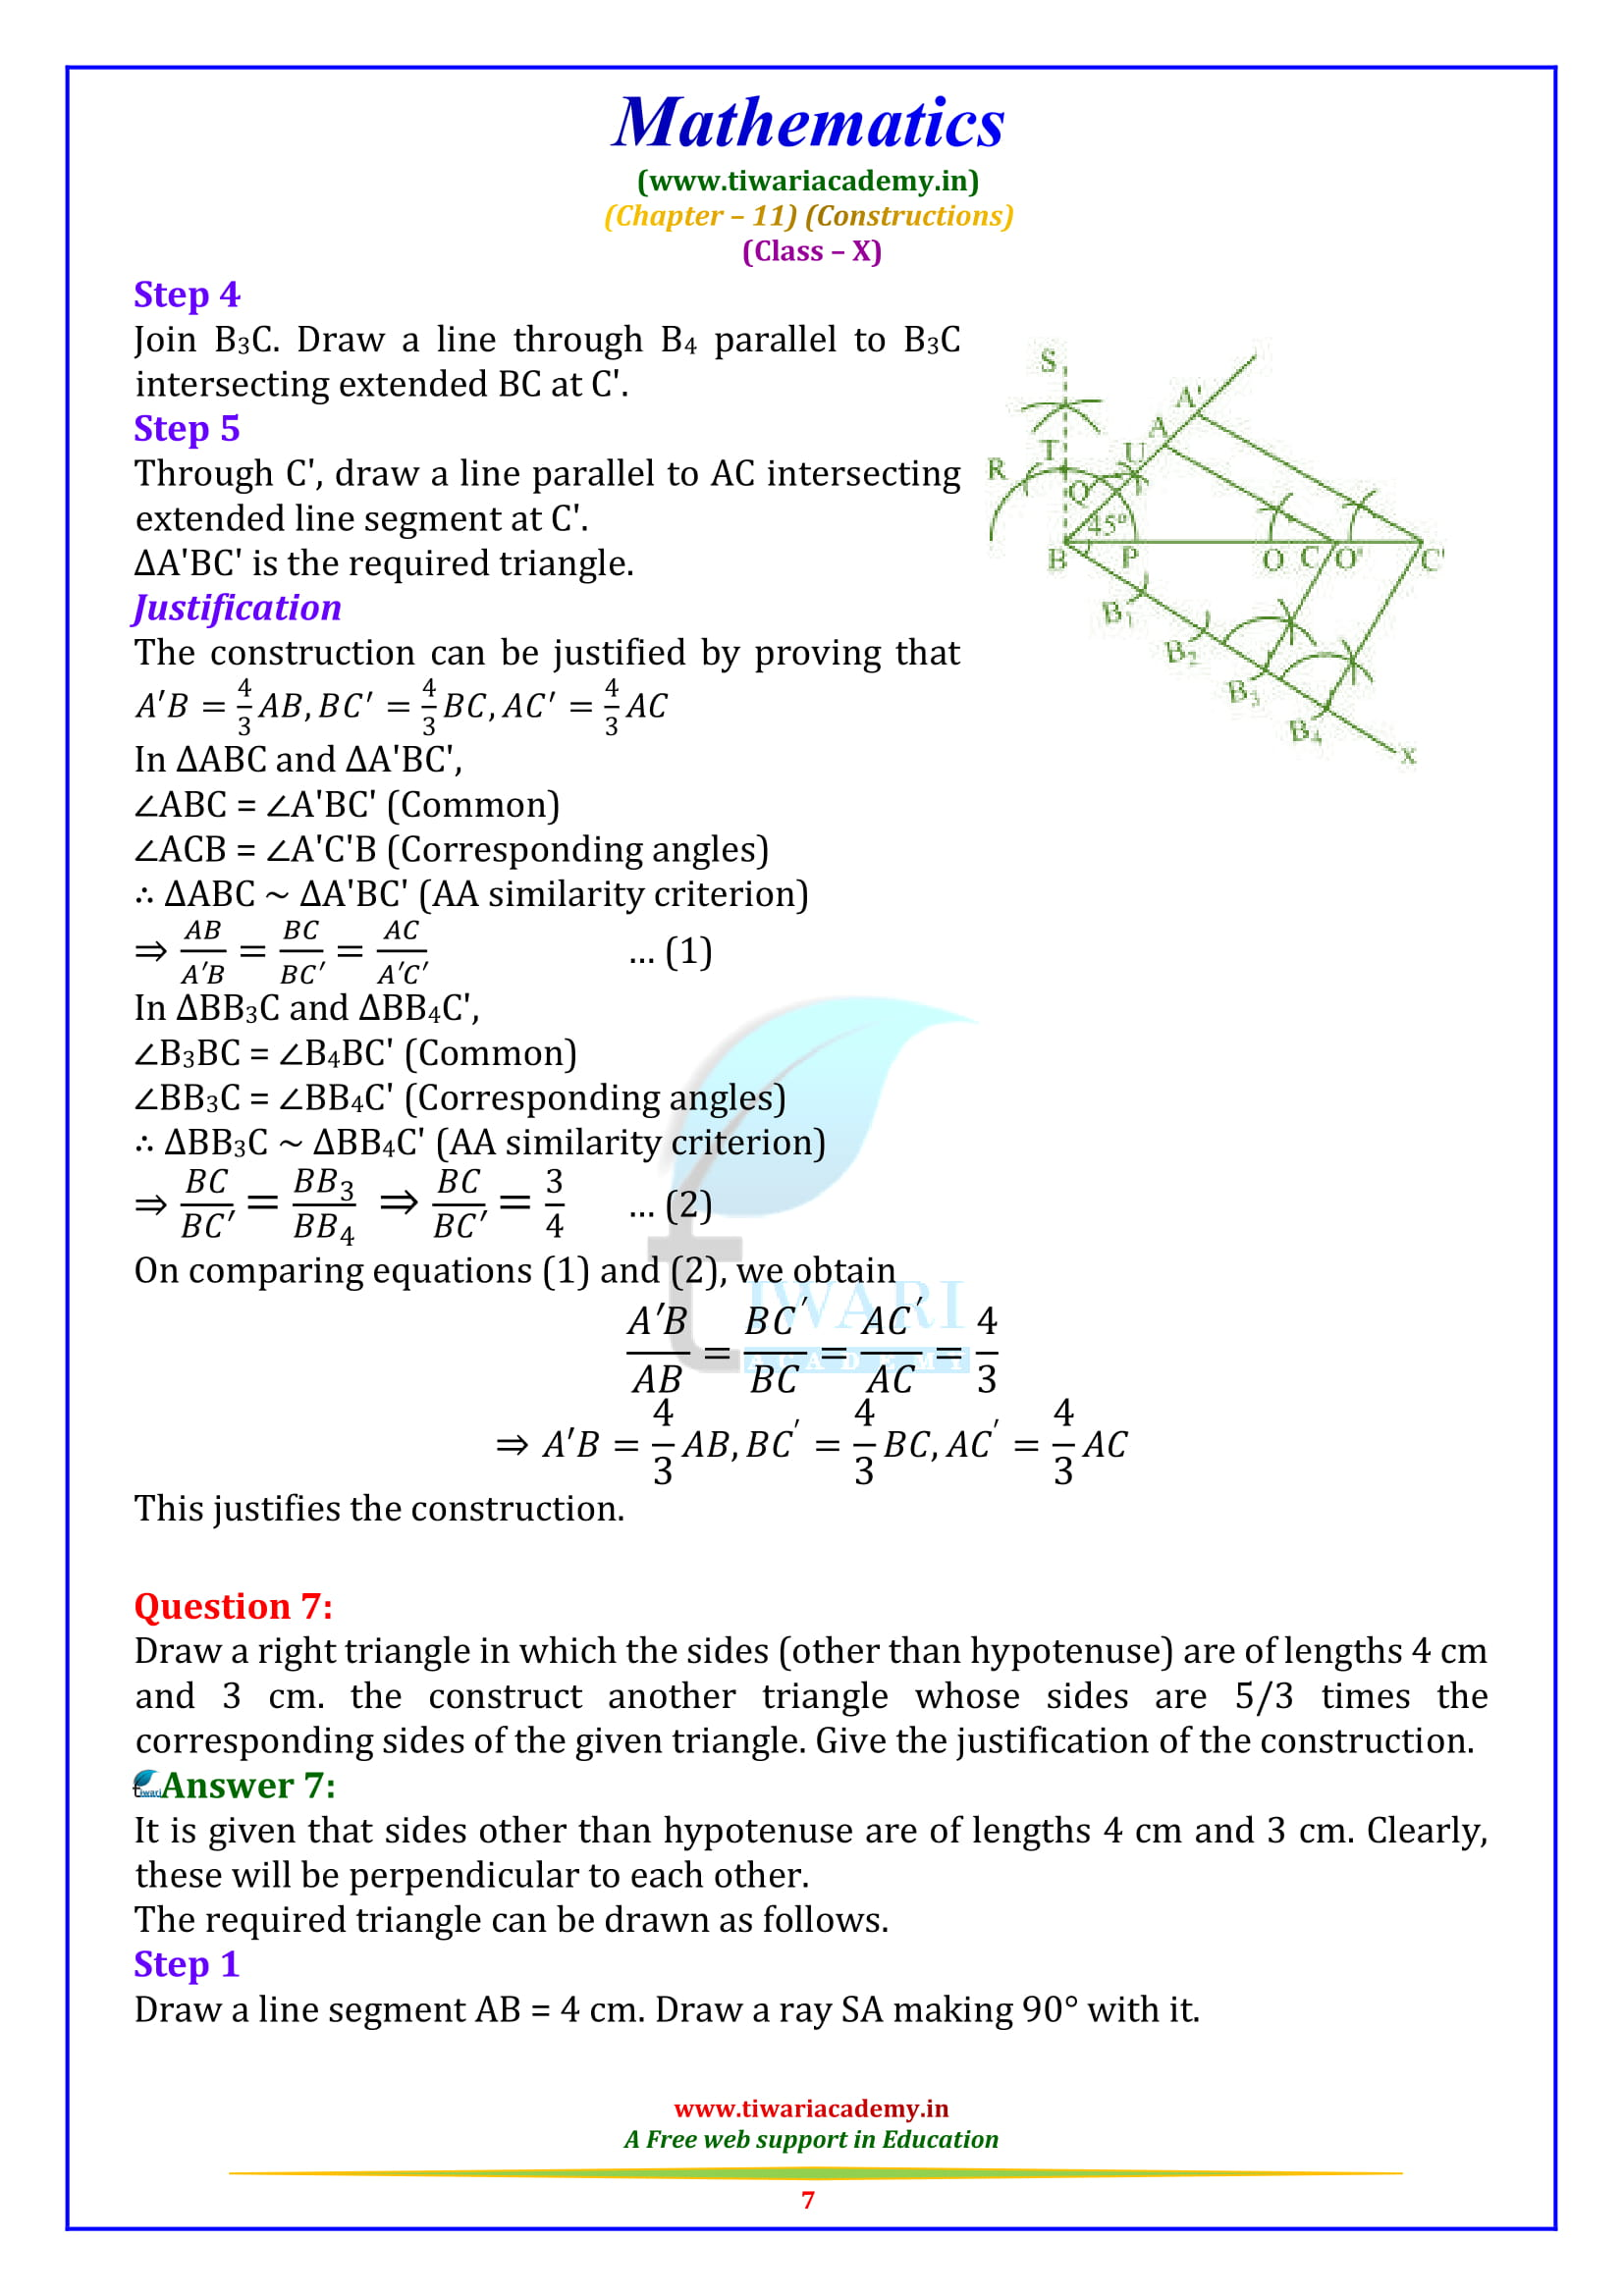 10 Maths exercise 11.1 in english sols in pdf form